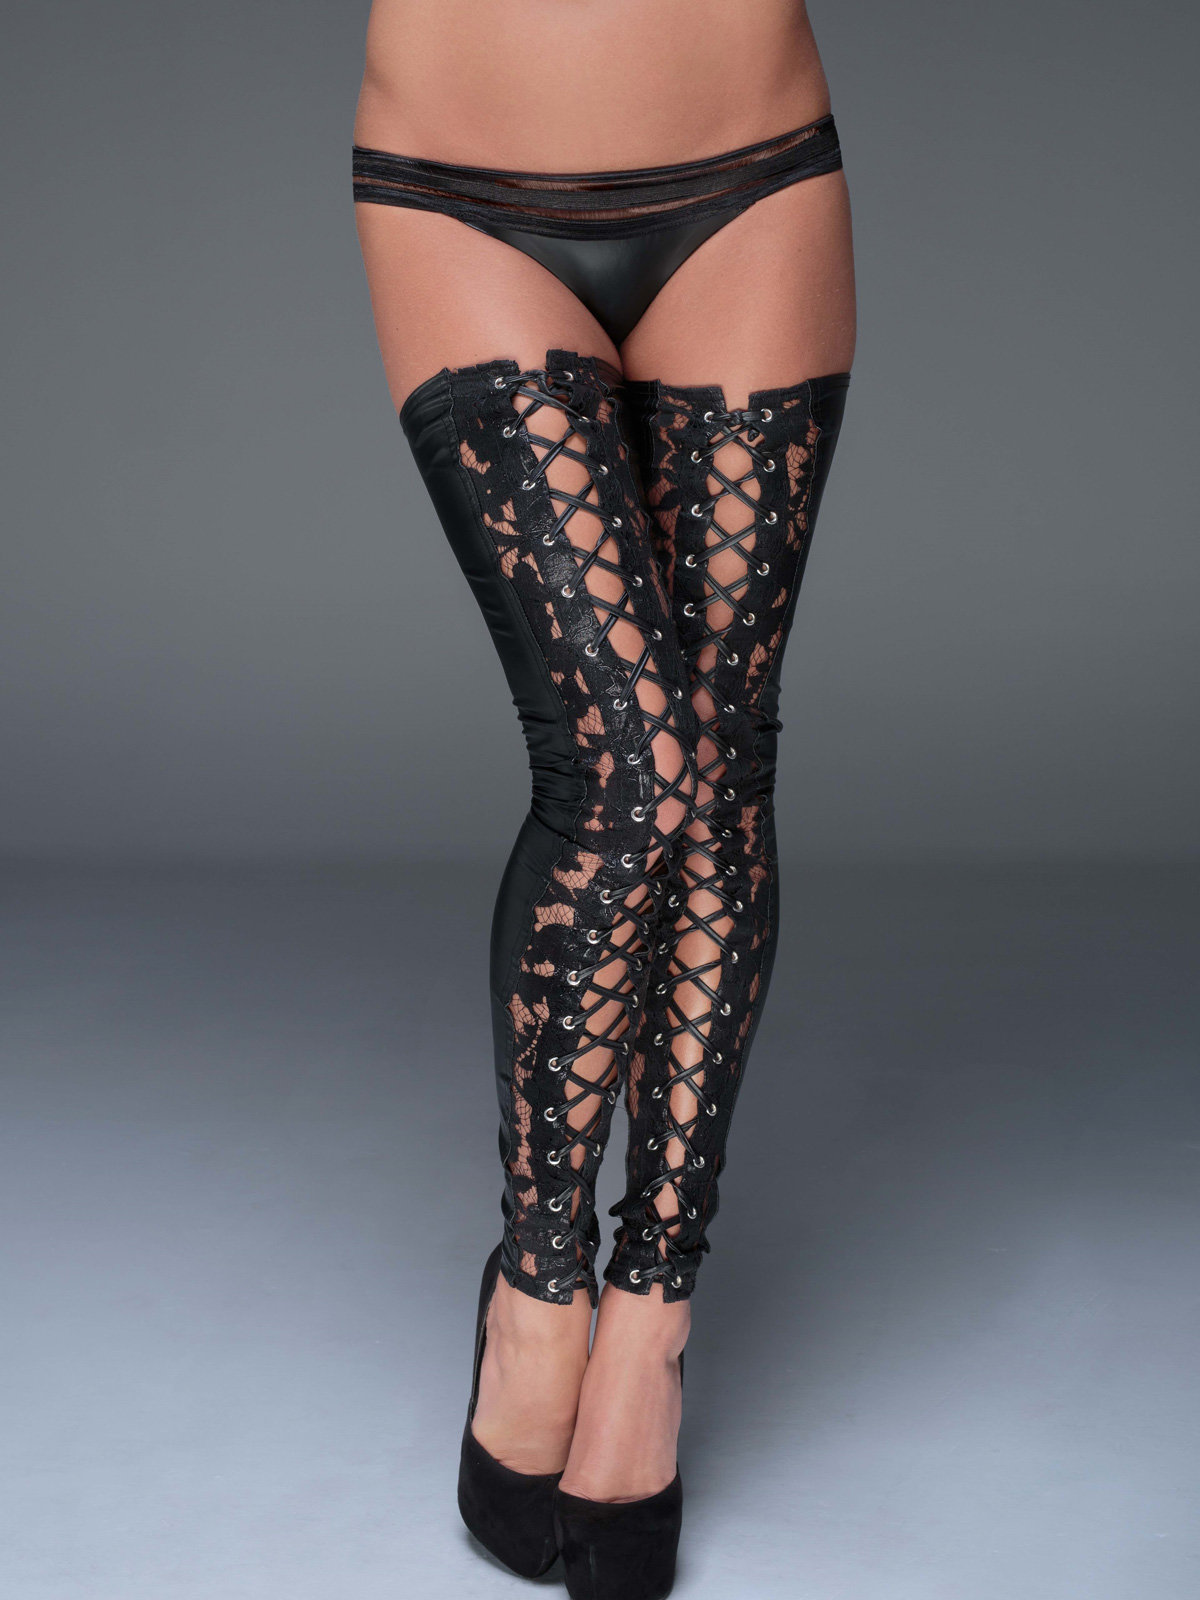 Dresuri Lace and powerwetlook Negru de la Noir Handmade